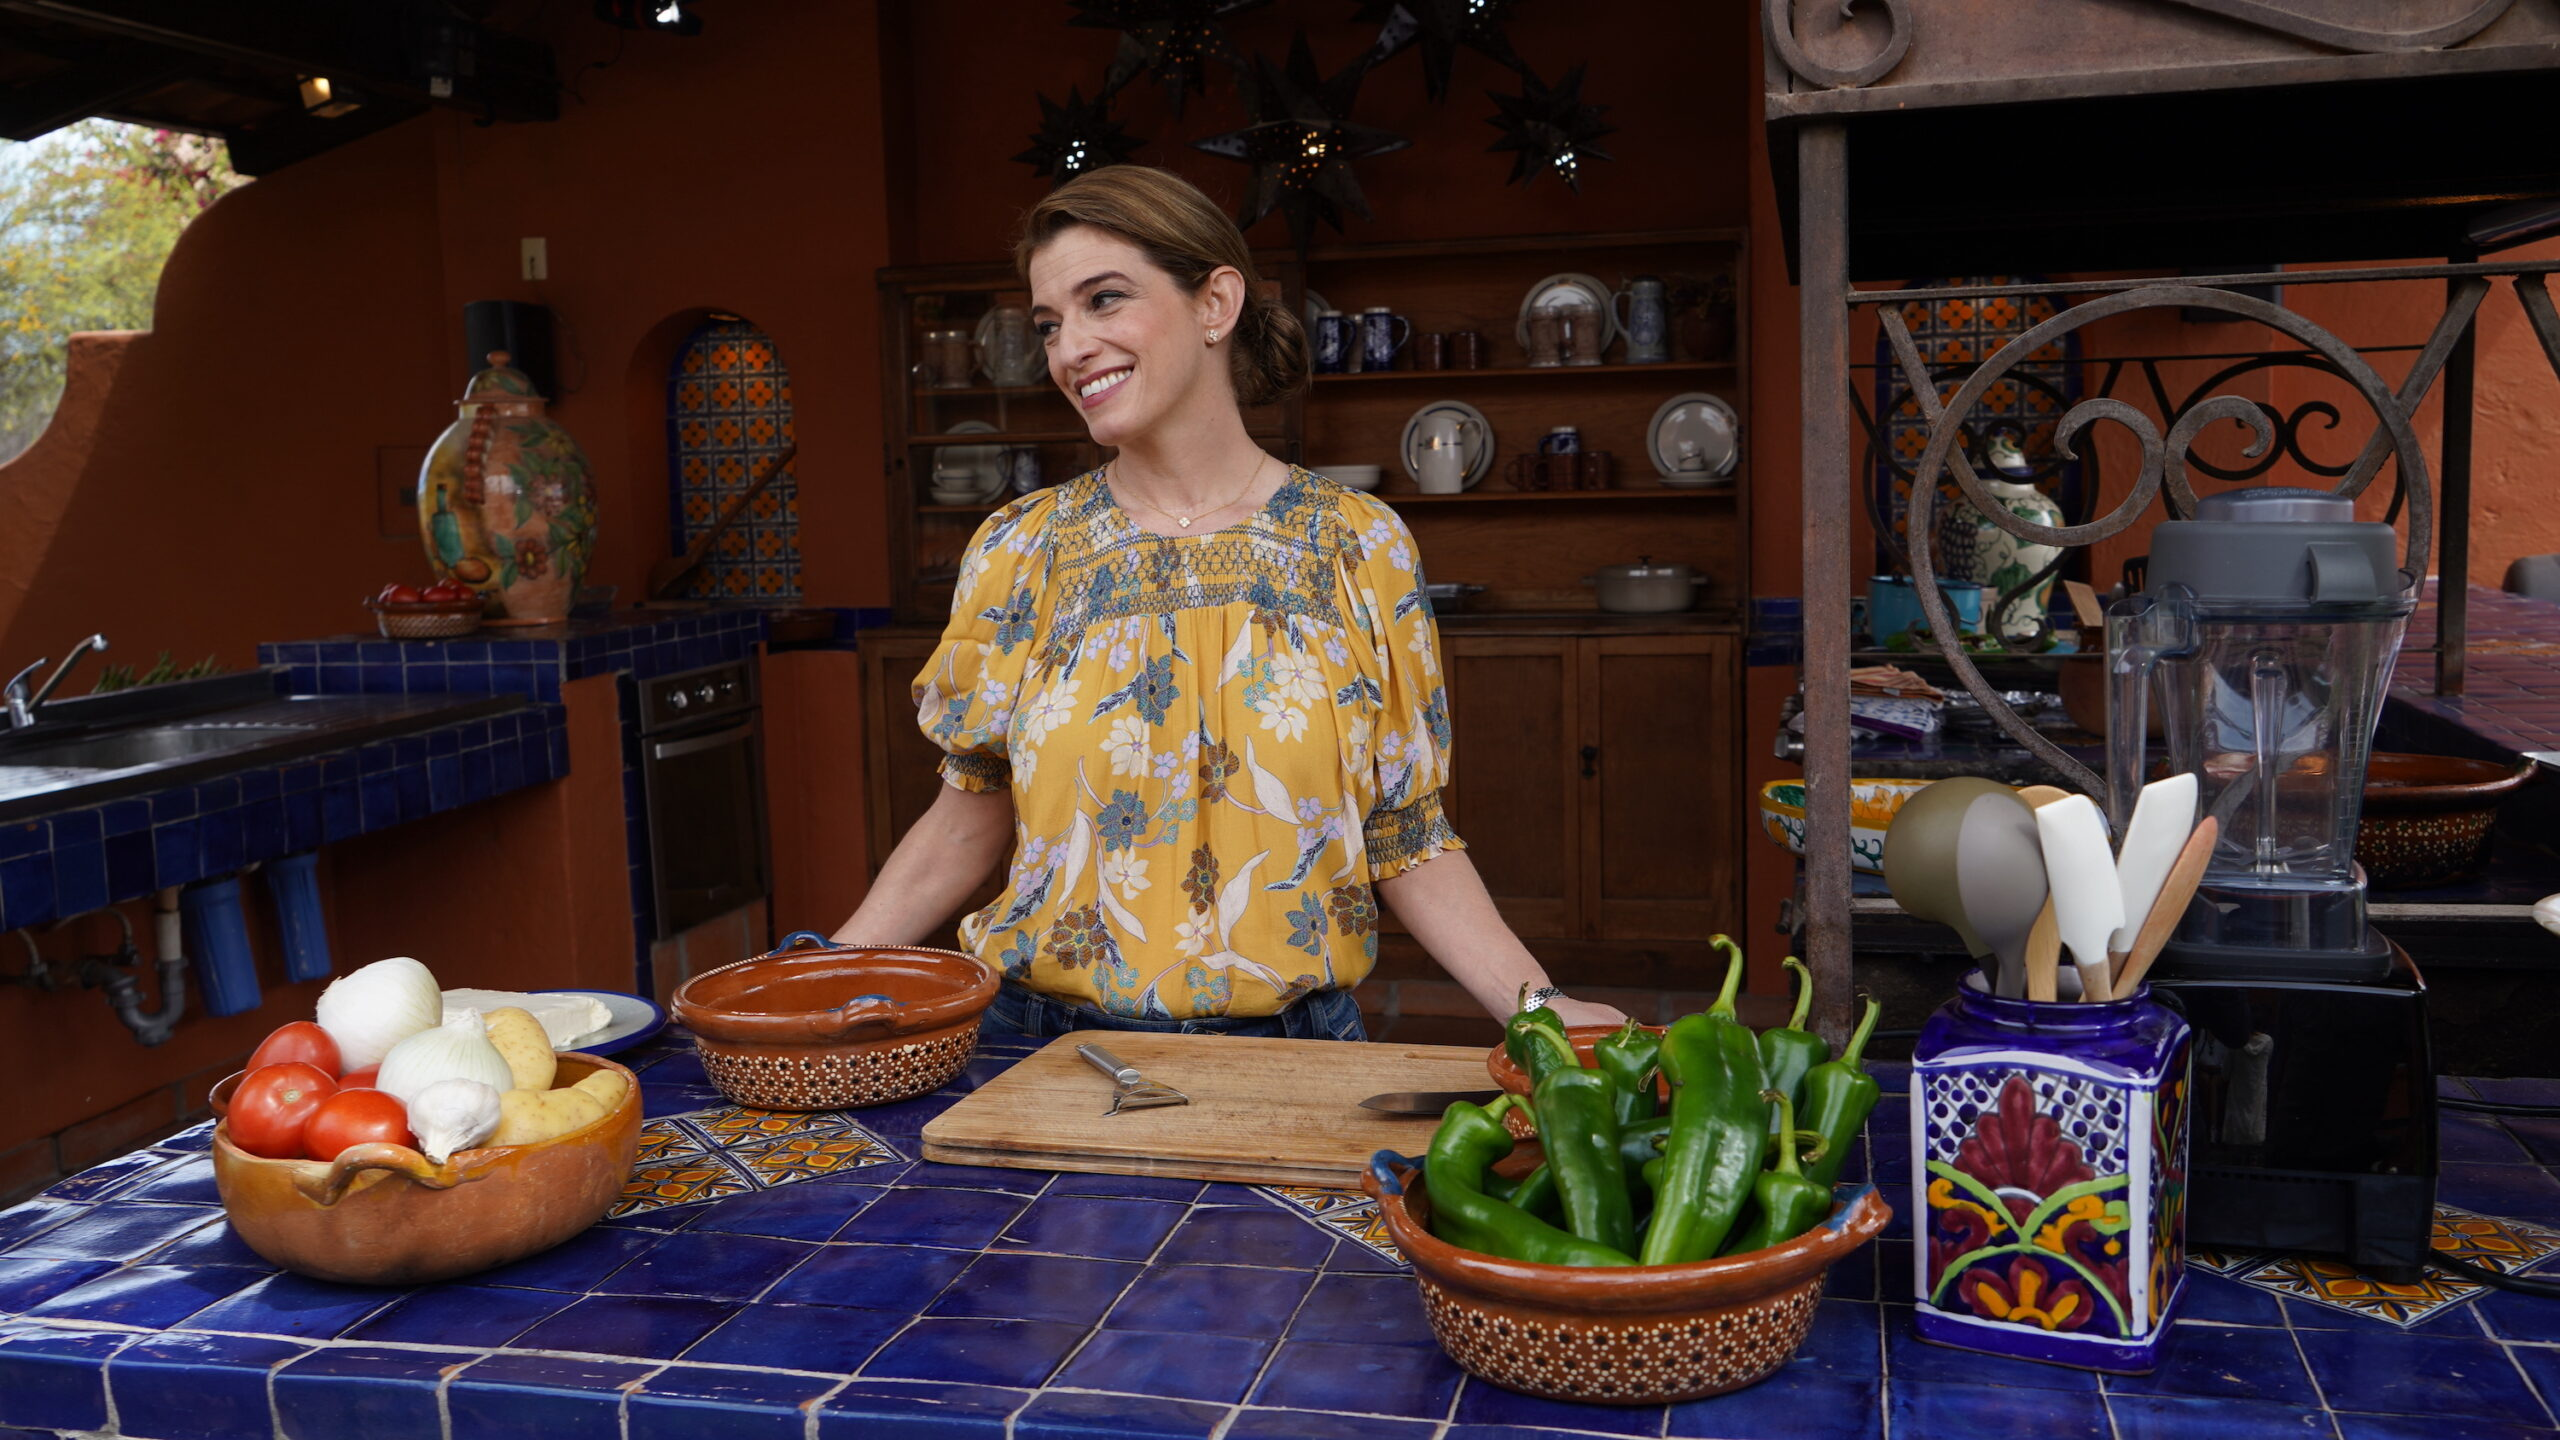 Times of Israel: TV chef brings Mexican latkes and jalapeno matzah ball soup north of border